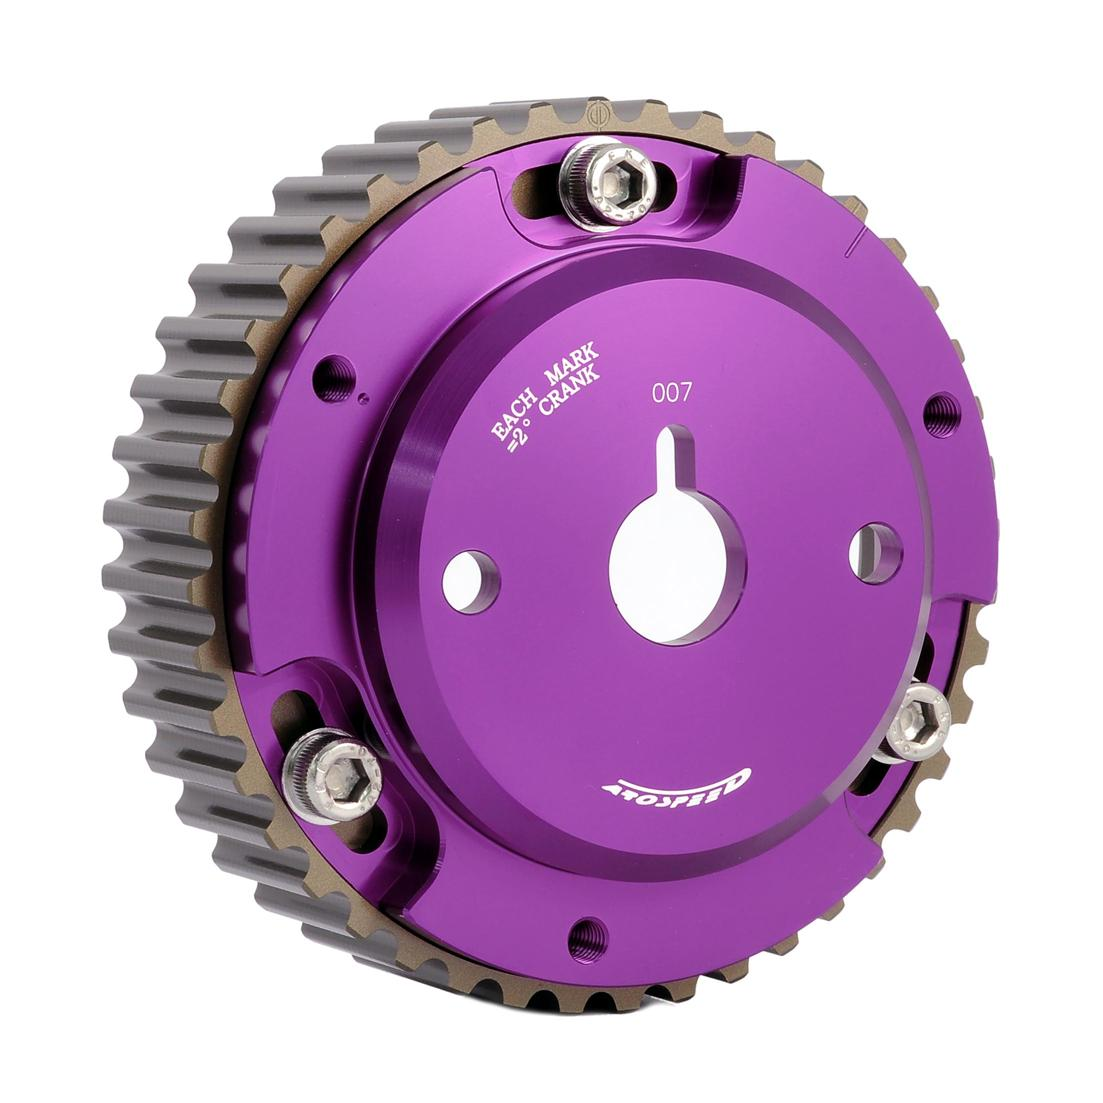 Arospeed Adj. Kenari/ Kelisa/ Viva Cam Pulley (Purple)